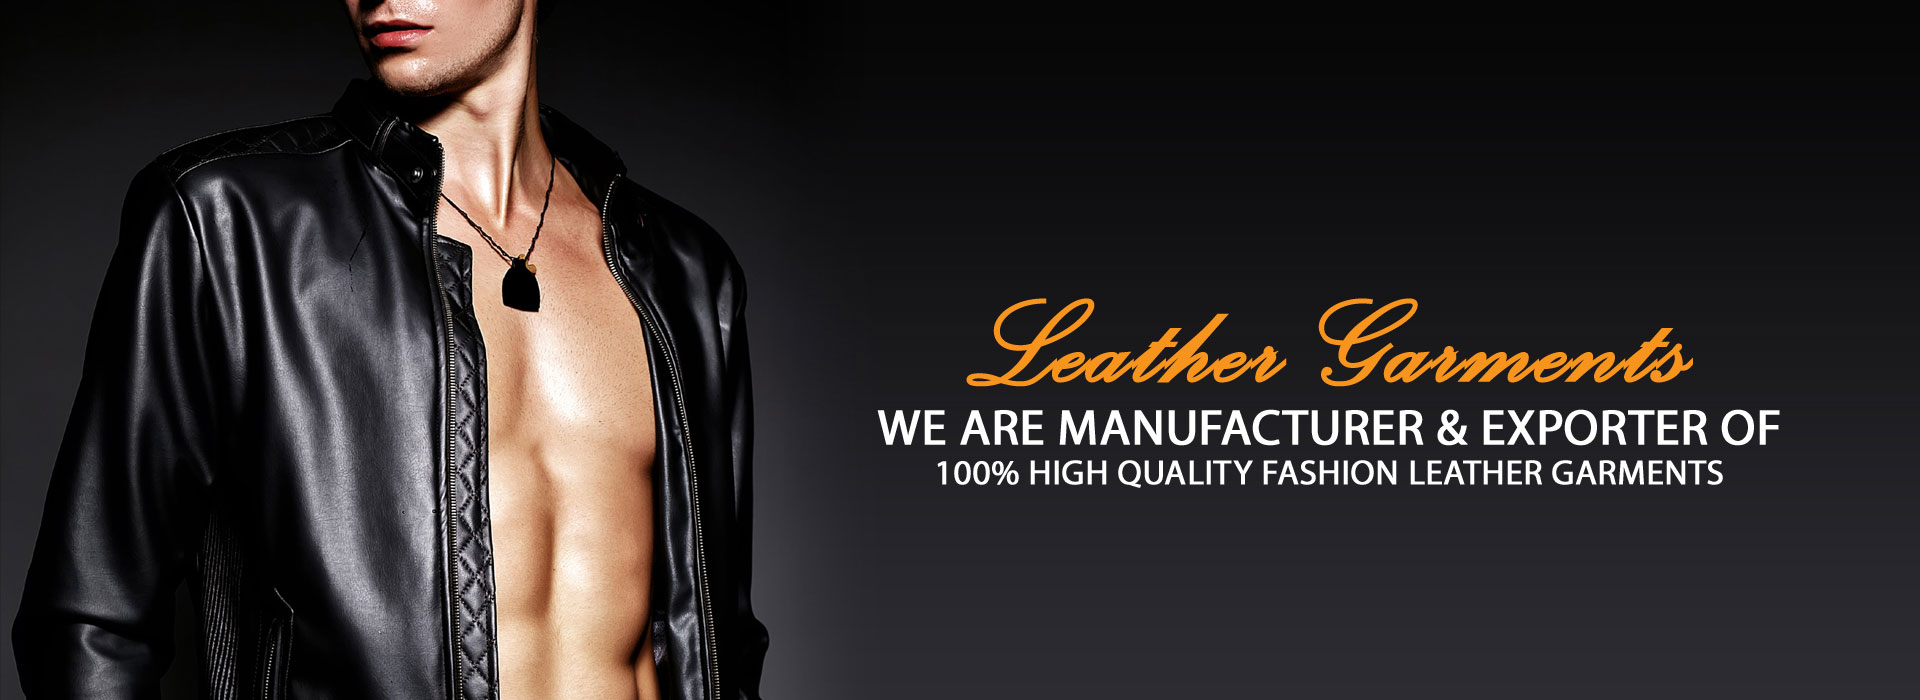 Leather-Garments